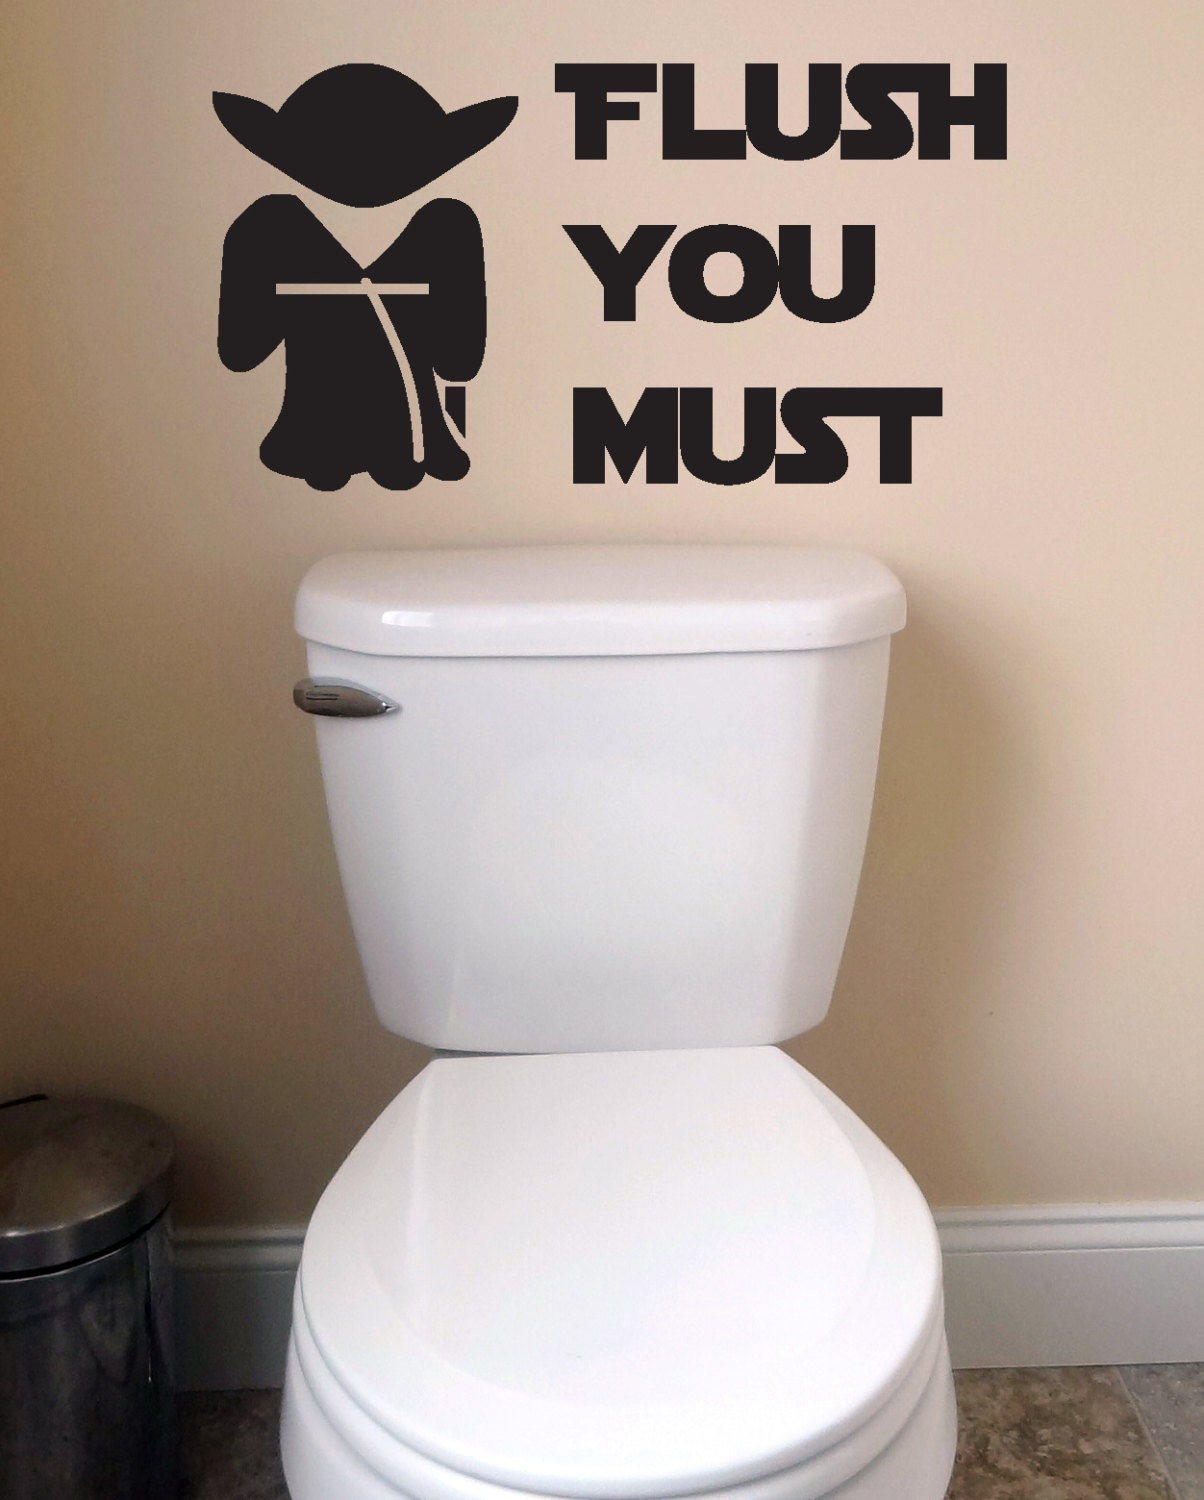 Bathroom wall decals kids d cor wall toilet decal wash flush for Toilet decor